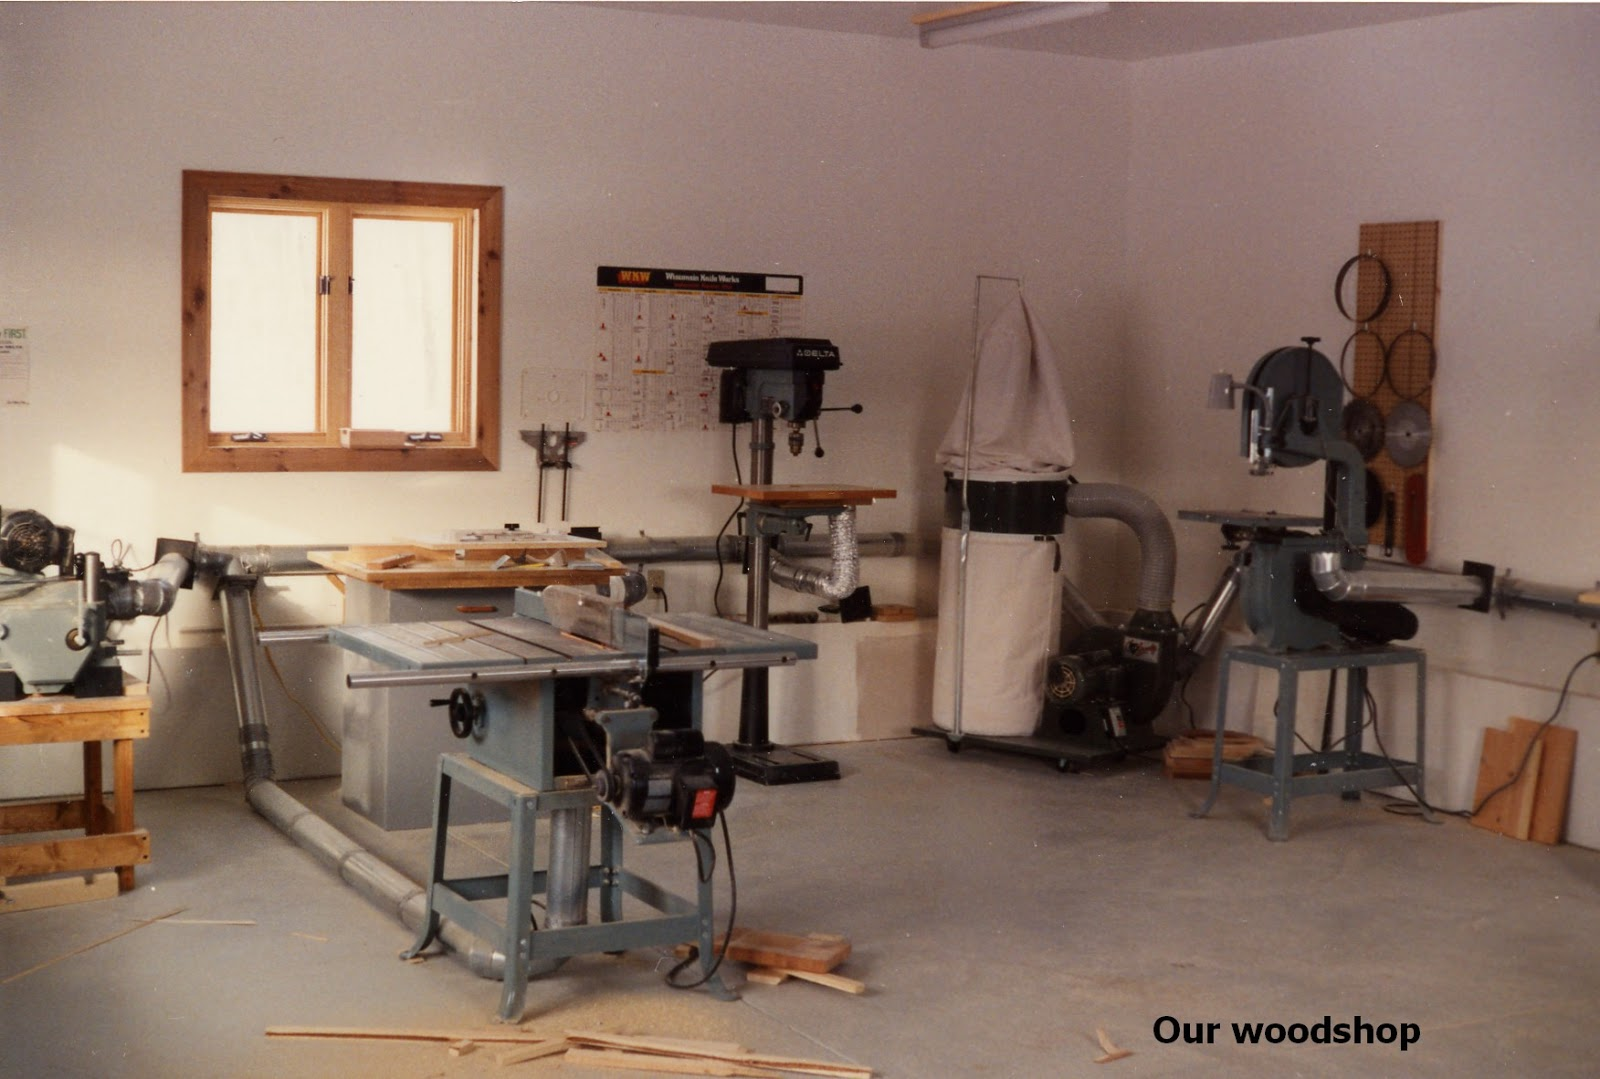 Poland Our Future The Wood Shop Woodshop When Roofing Was All Done I Put Plywood Sheets Over Outside Insulation In Walls And Ceiling Hired 2 Men To Up Gypsum Board